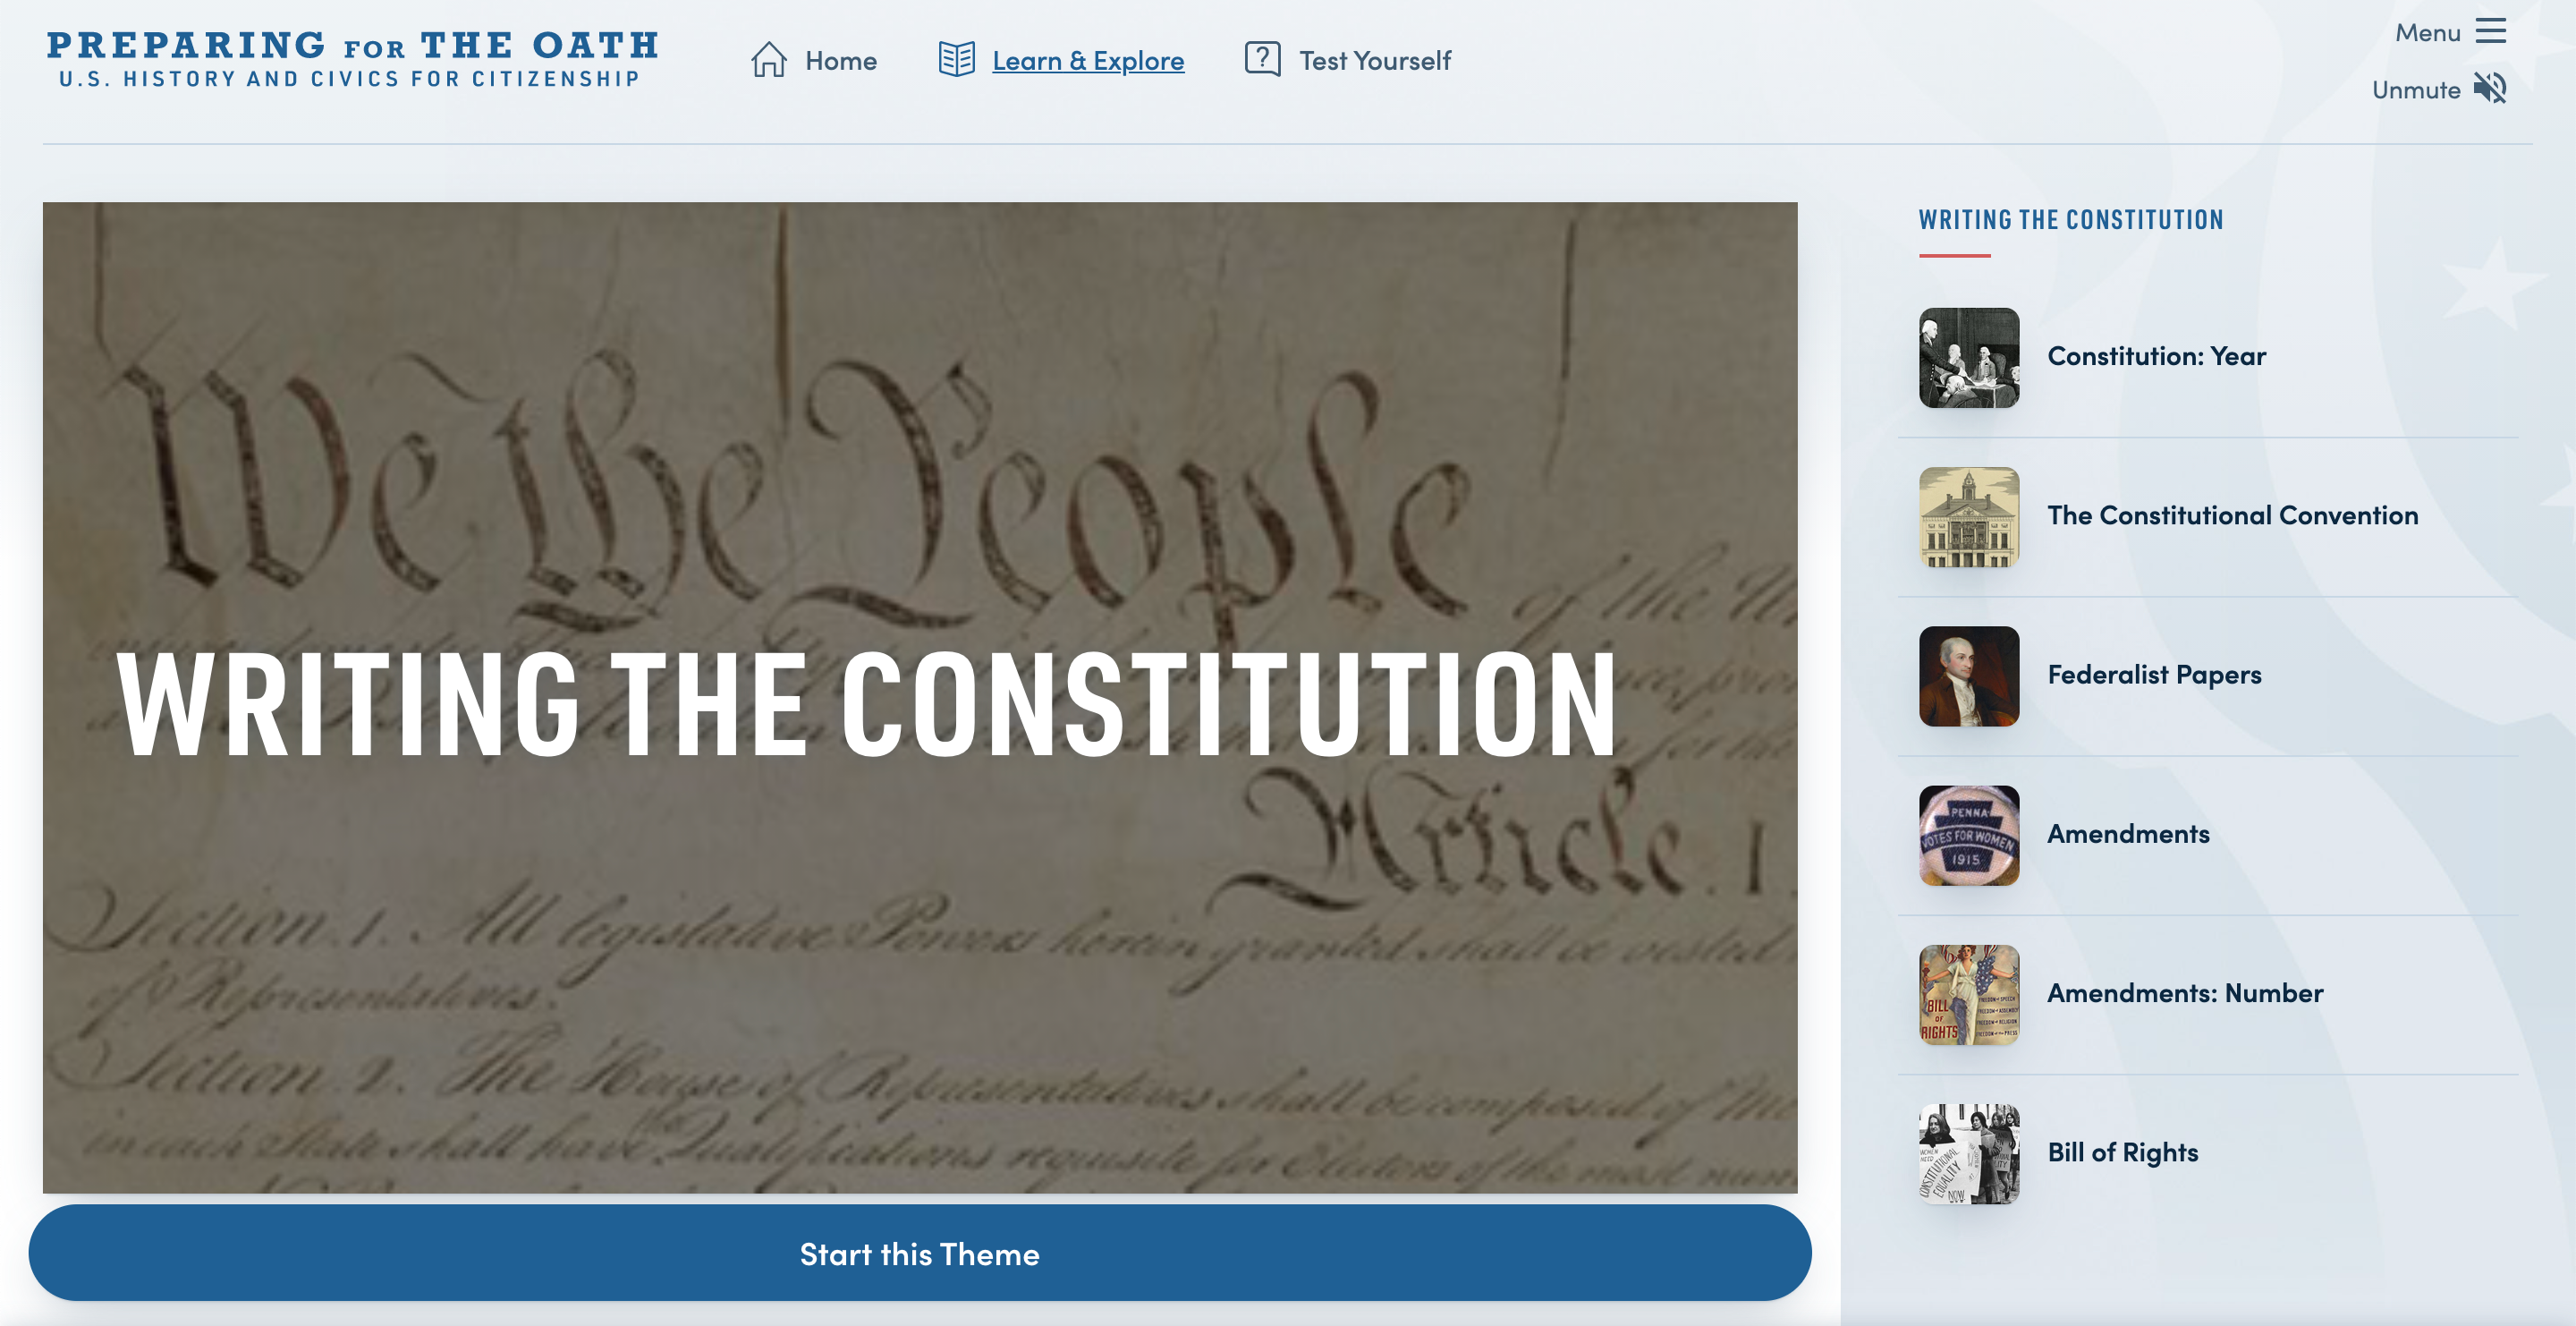 Thumbnail image of Preparing for the Oath: Writing the Constitution resource